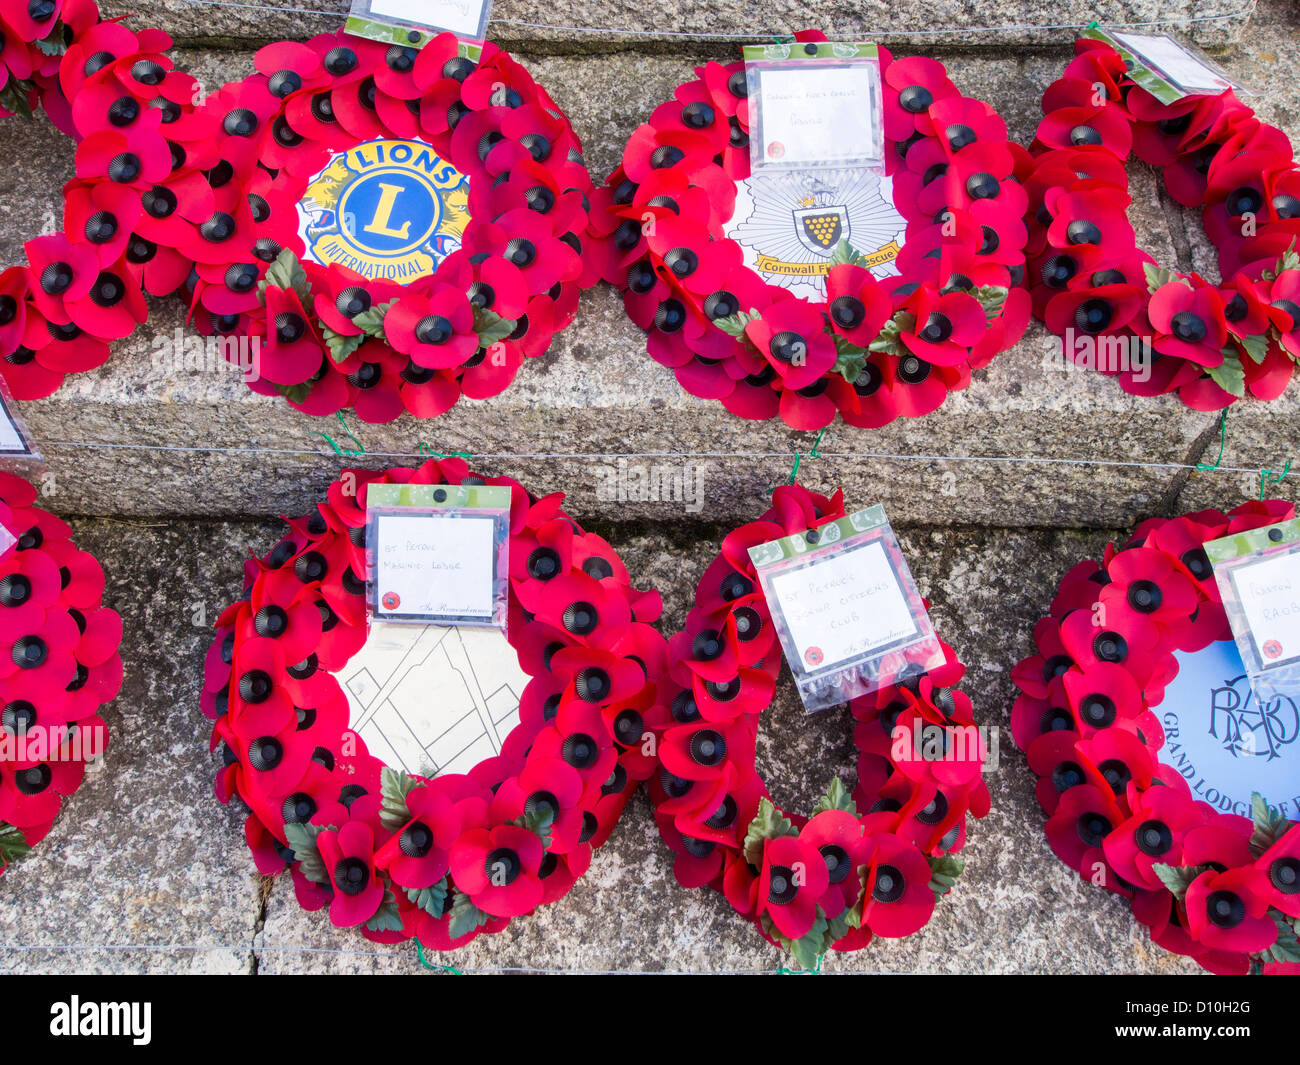 Poppy wreaths on Padstow war memorial, Cornwall. - Stock Image